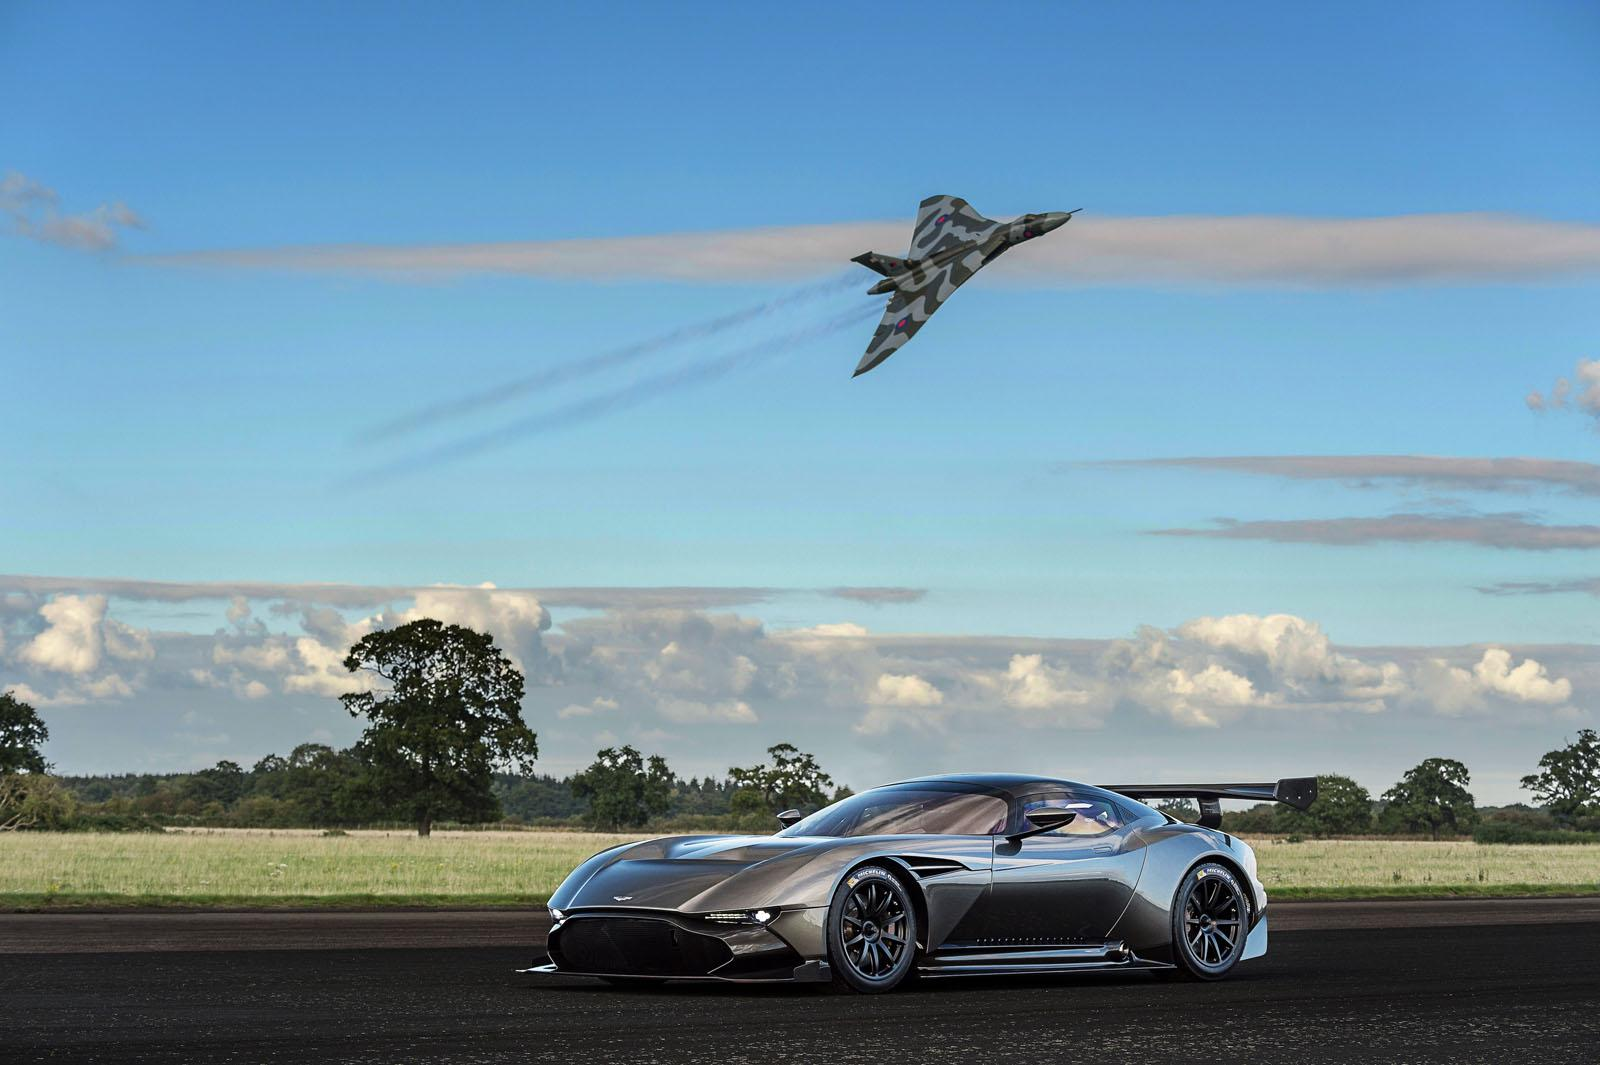 vid o quand l 39 aston martin vulcan rencontre l 39 avion avro vulcan les voitures. Black Bedroom Furniture Sets. Home Design Ideas